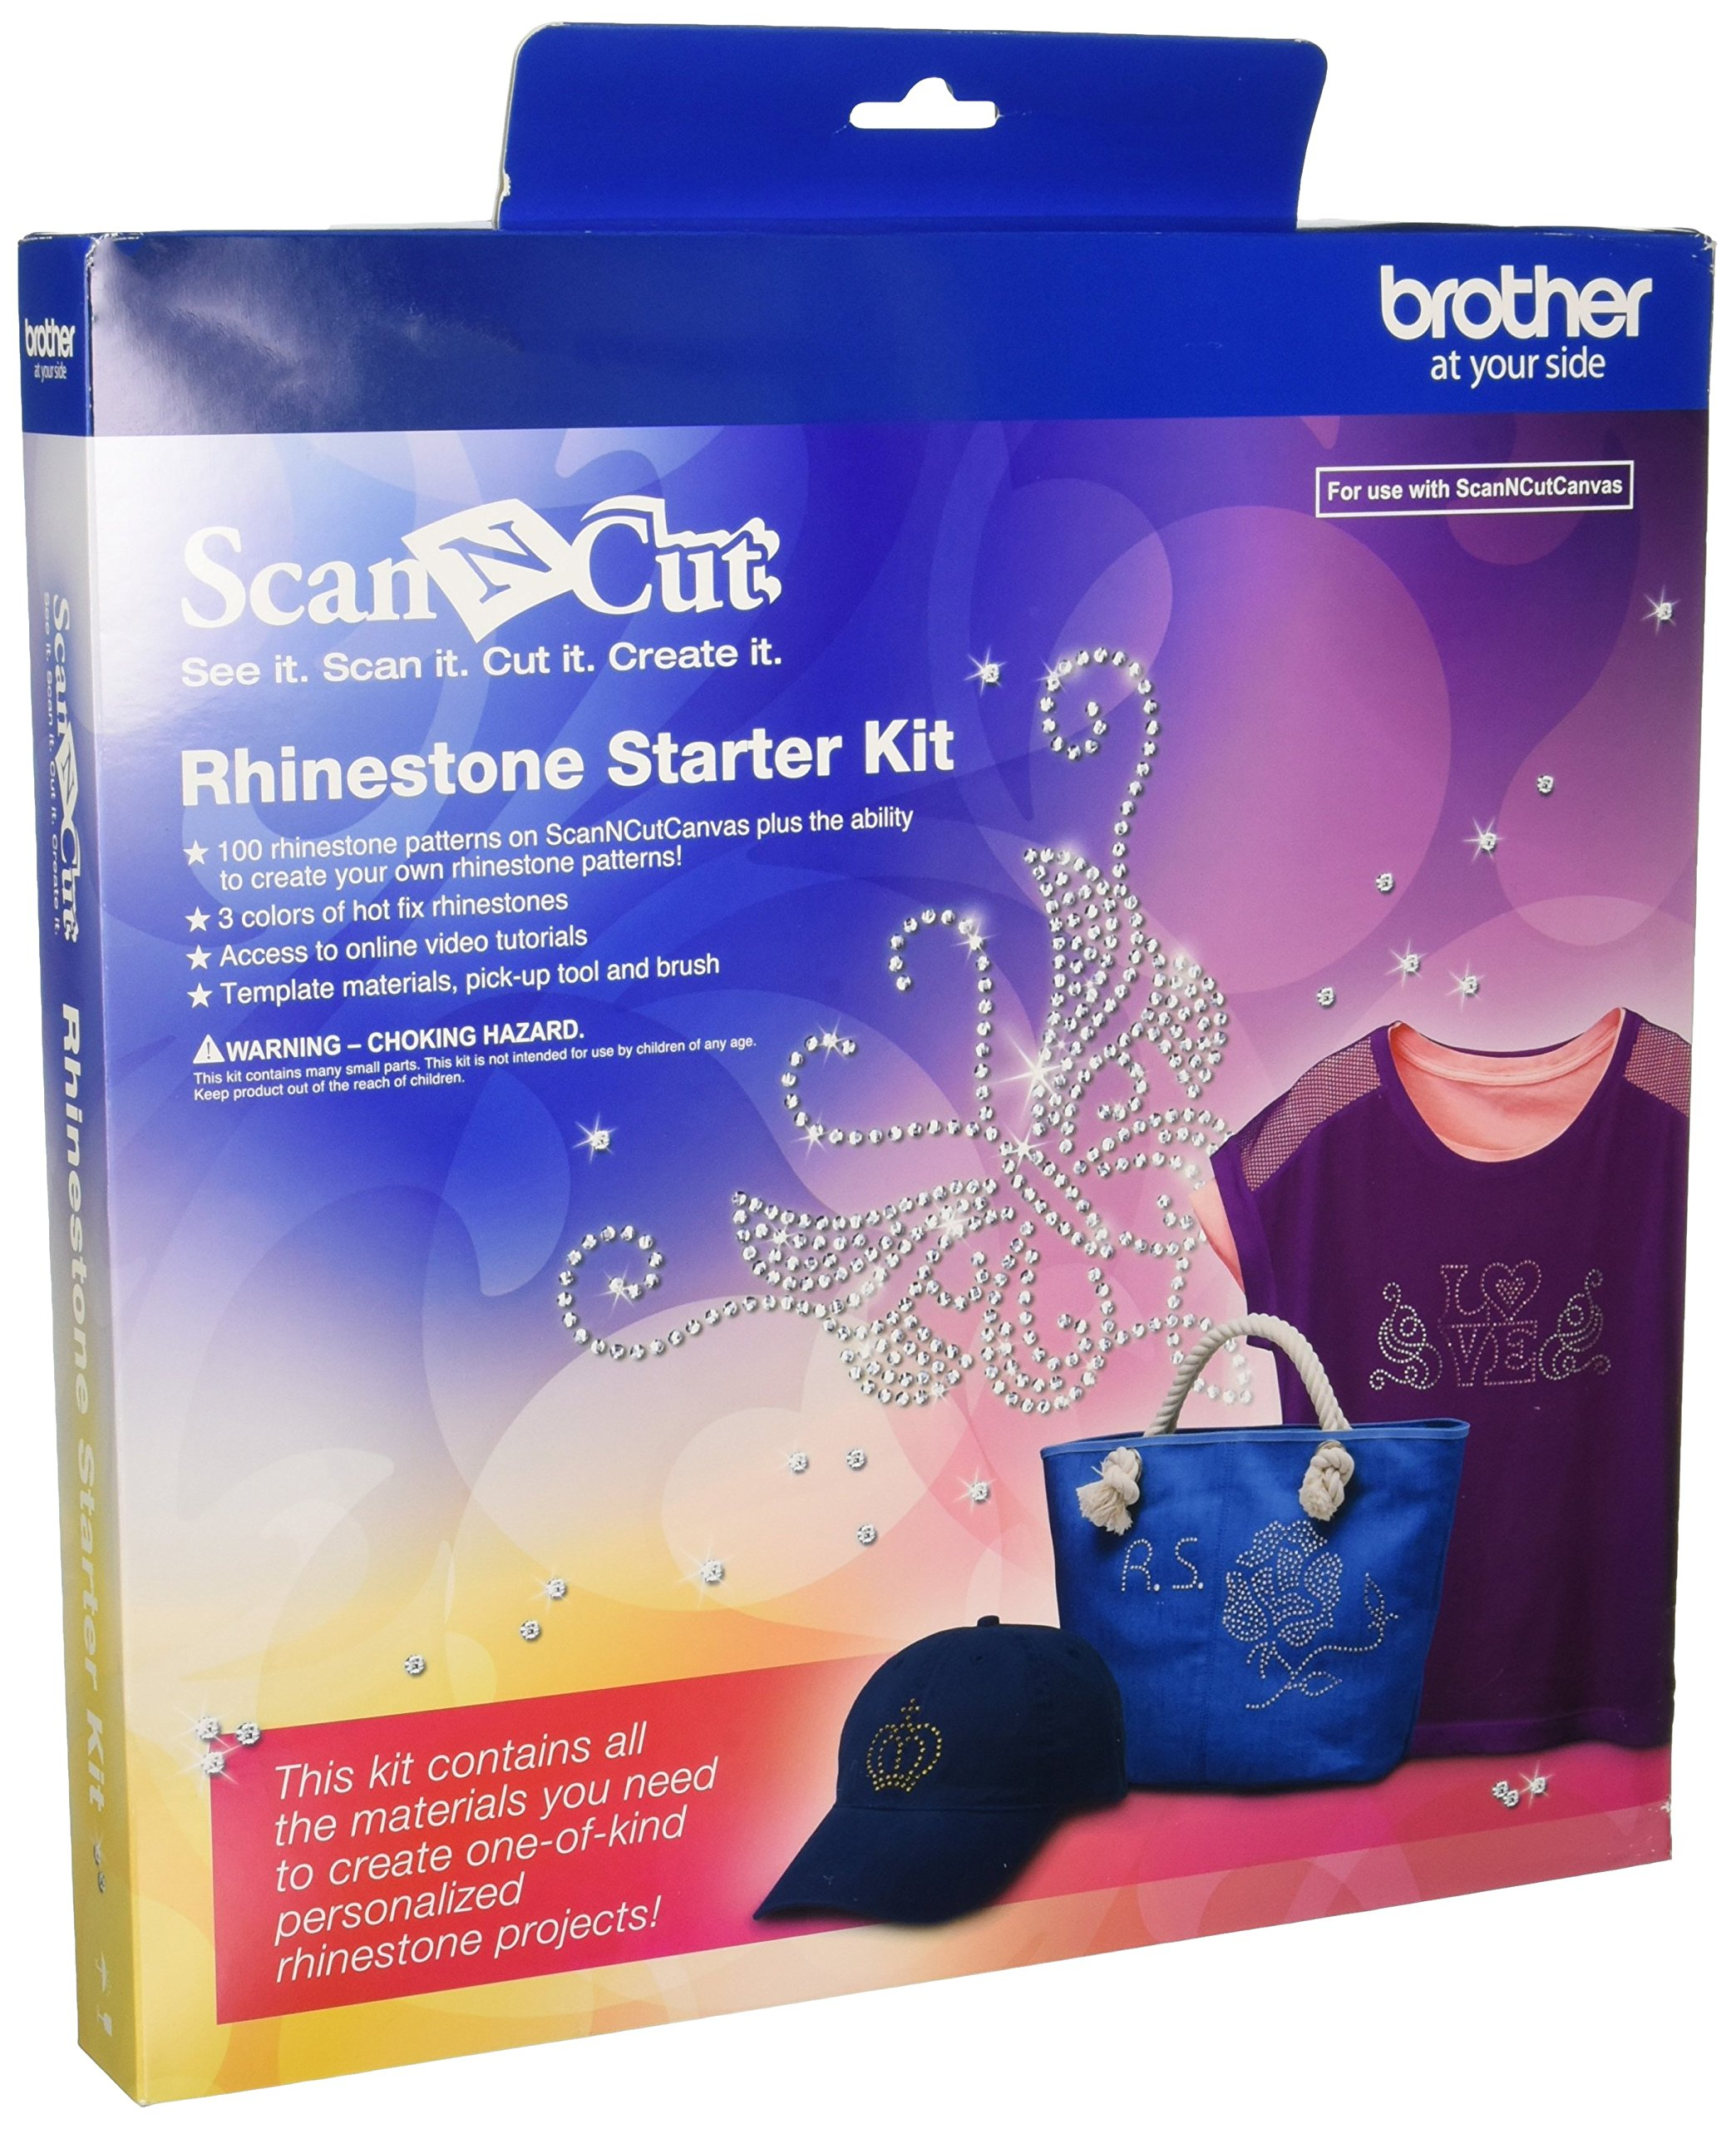 Brother CARSKIT1 Rhinestone Starter Kit, 100 Rhinestone Patterns, ScanNCut Canvas, 4 Types of Hot Fix Rhinestone, Access to Online Video Tutorials, Pick-Up-Tool & Brush by Brother